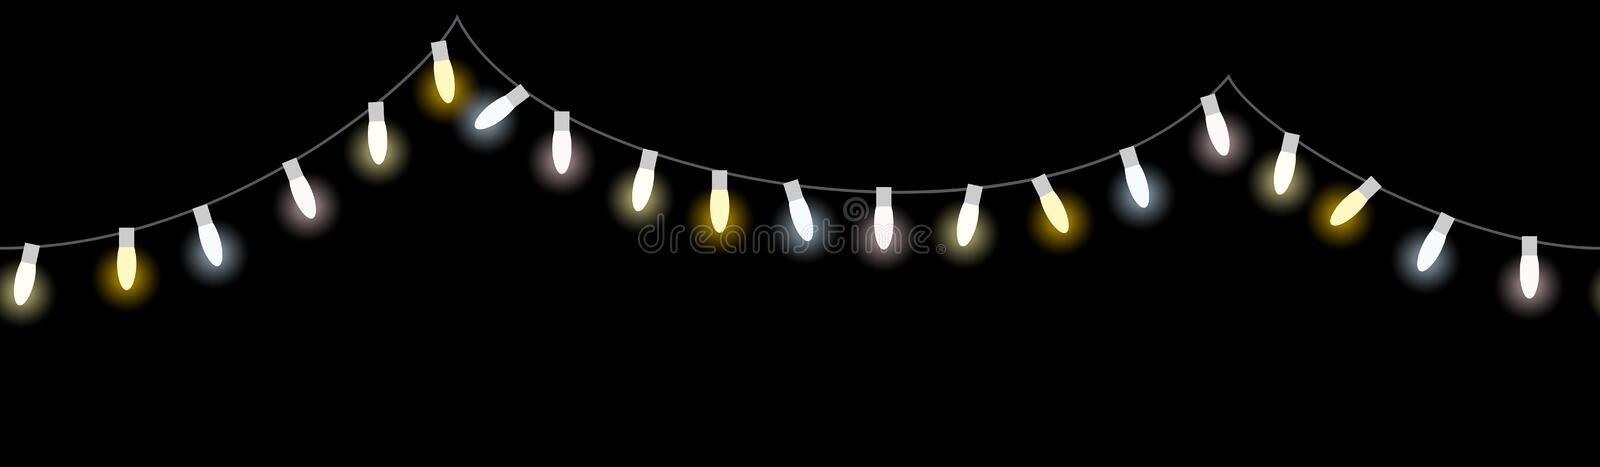 Colored light bulbs string. Vector illustration of seamless light bulbs string with different colors isolated on black background stock illustration